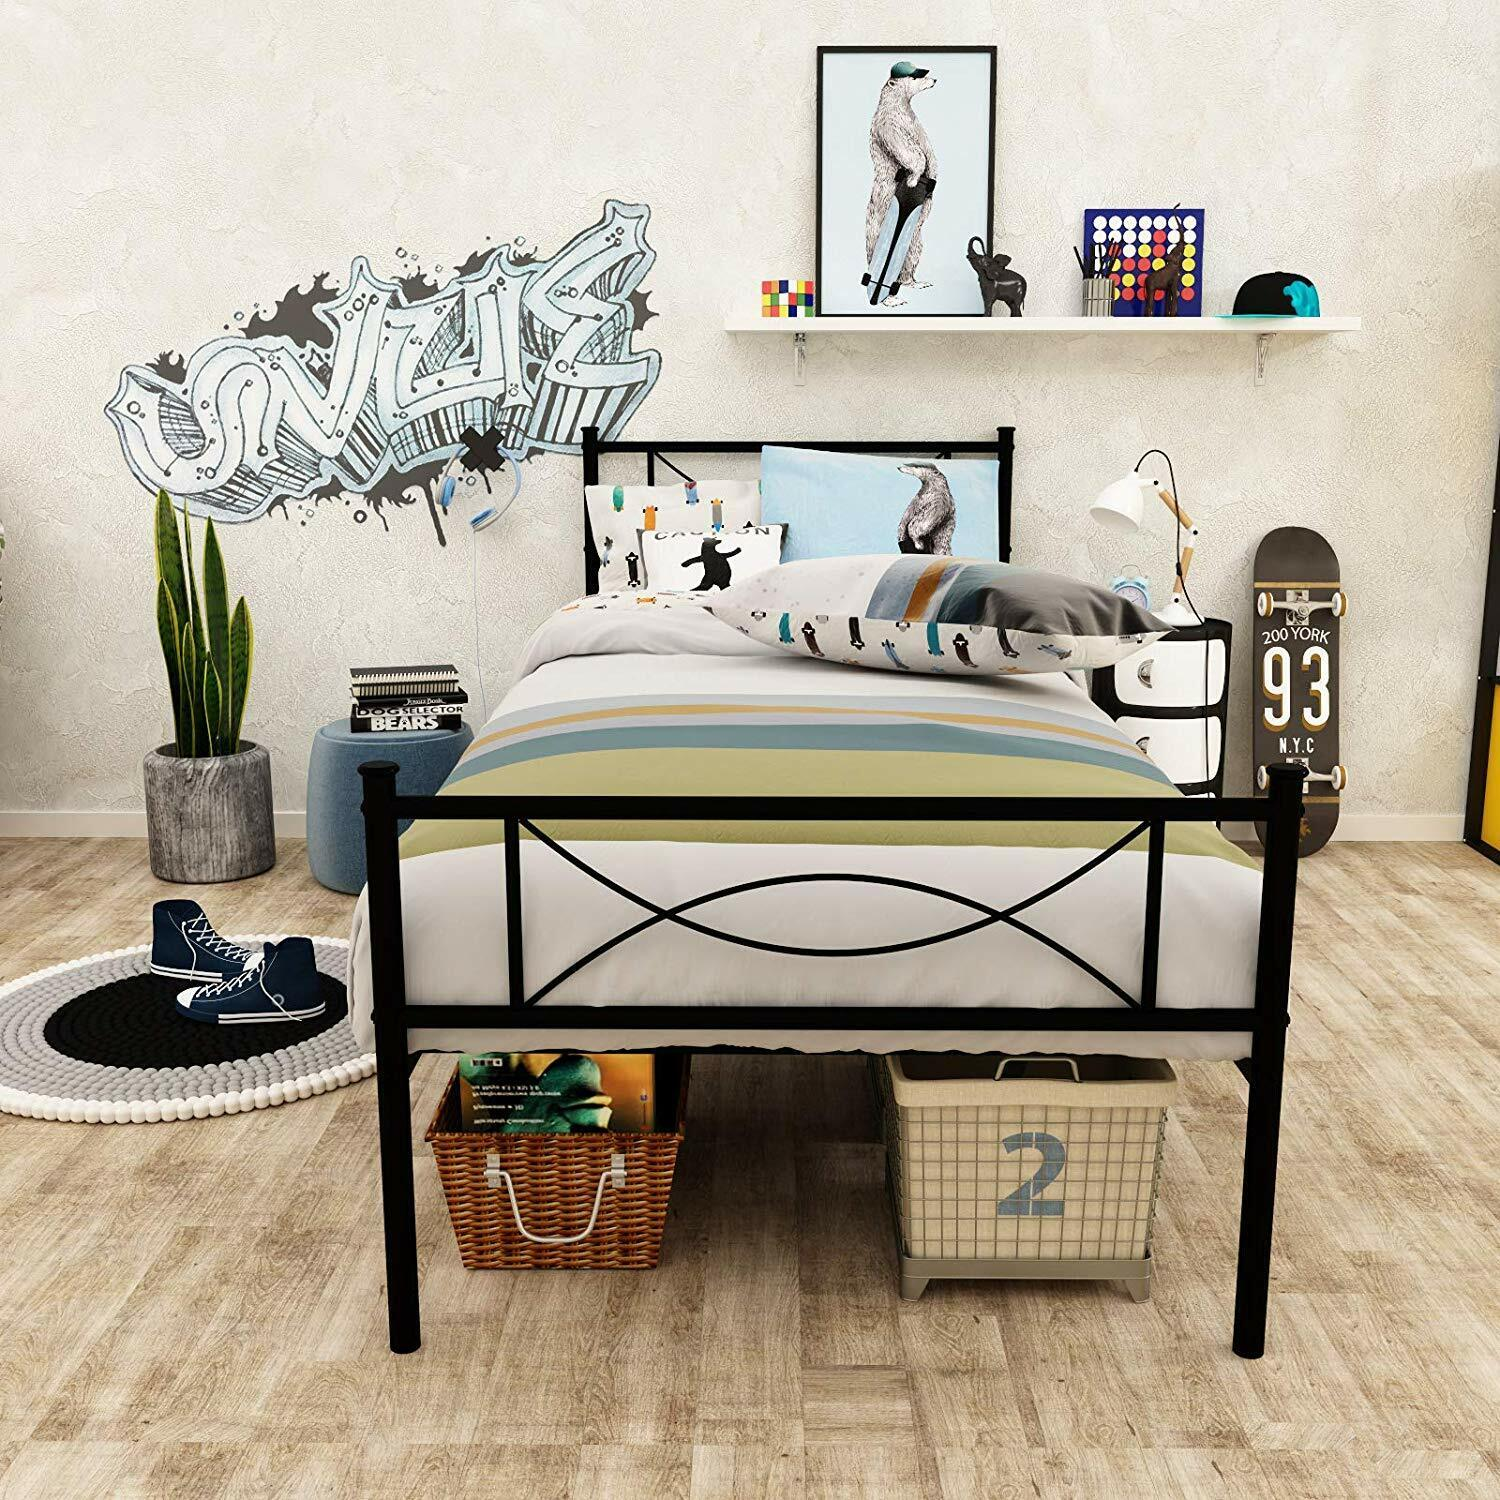 Metal Bed Frame Twin Size With Vintage Headboard And Twin Antique Brown For Sale Online Ebay